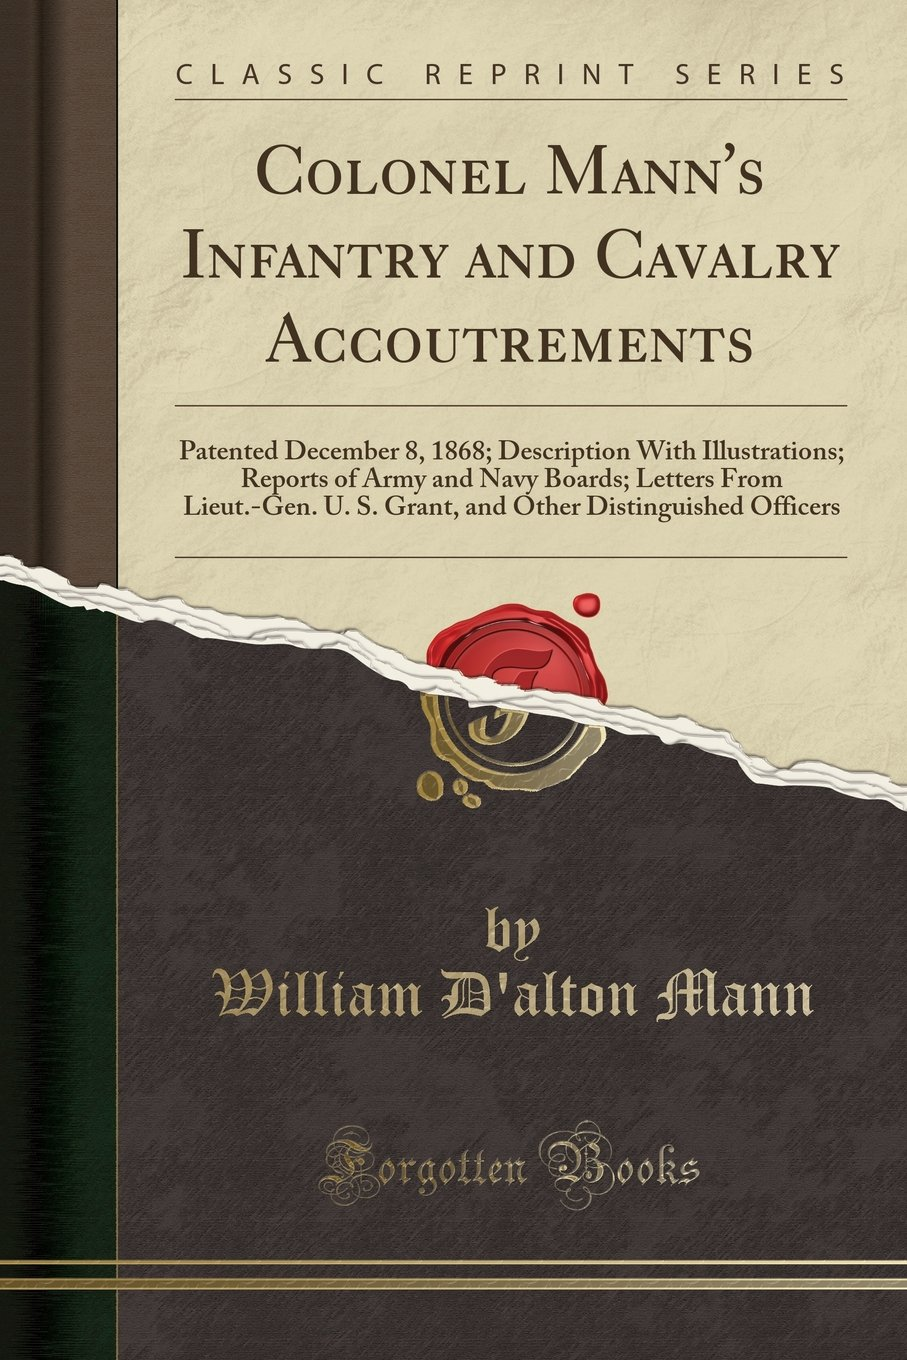 Colonel Mann's Infantry and Cavalry Accoutrements: Patented December 8, 1868; Description With Illustrations; Reports of Army and Navy Boards; Letters ... Distinguished Officers (Classic Reprint) ebook